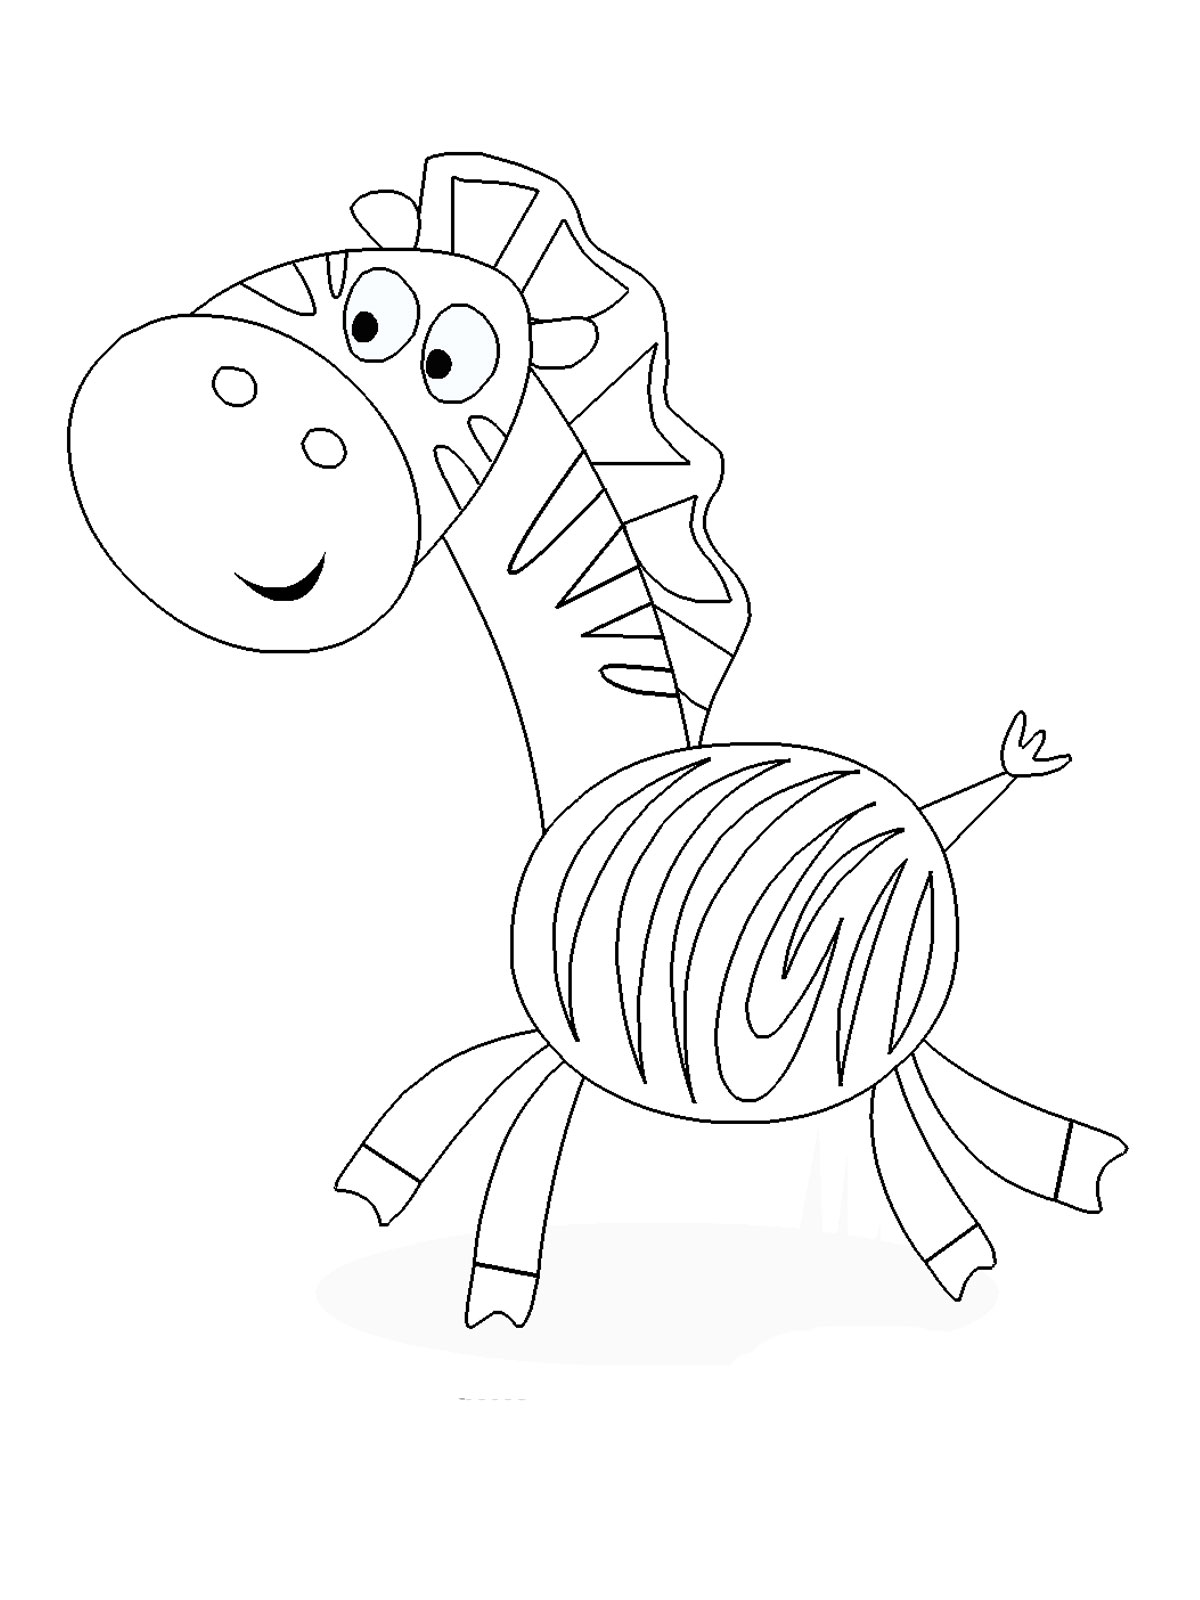 kids coloring sheets 40 exclusive kids coloring pages ideas we need fun kids sheets coloring